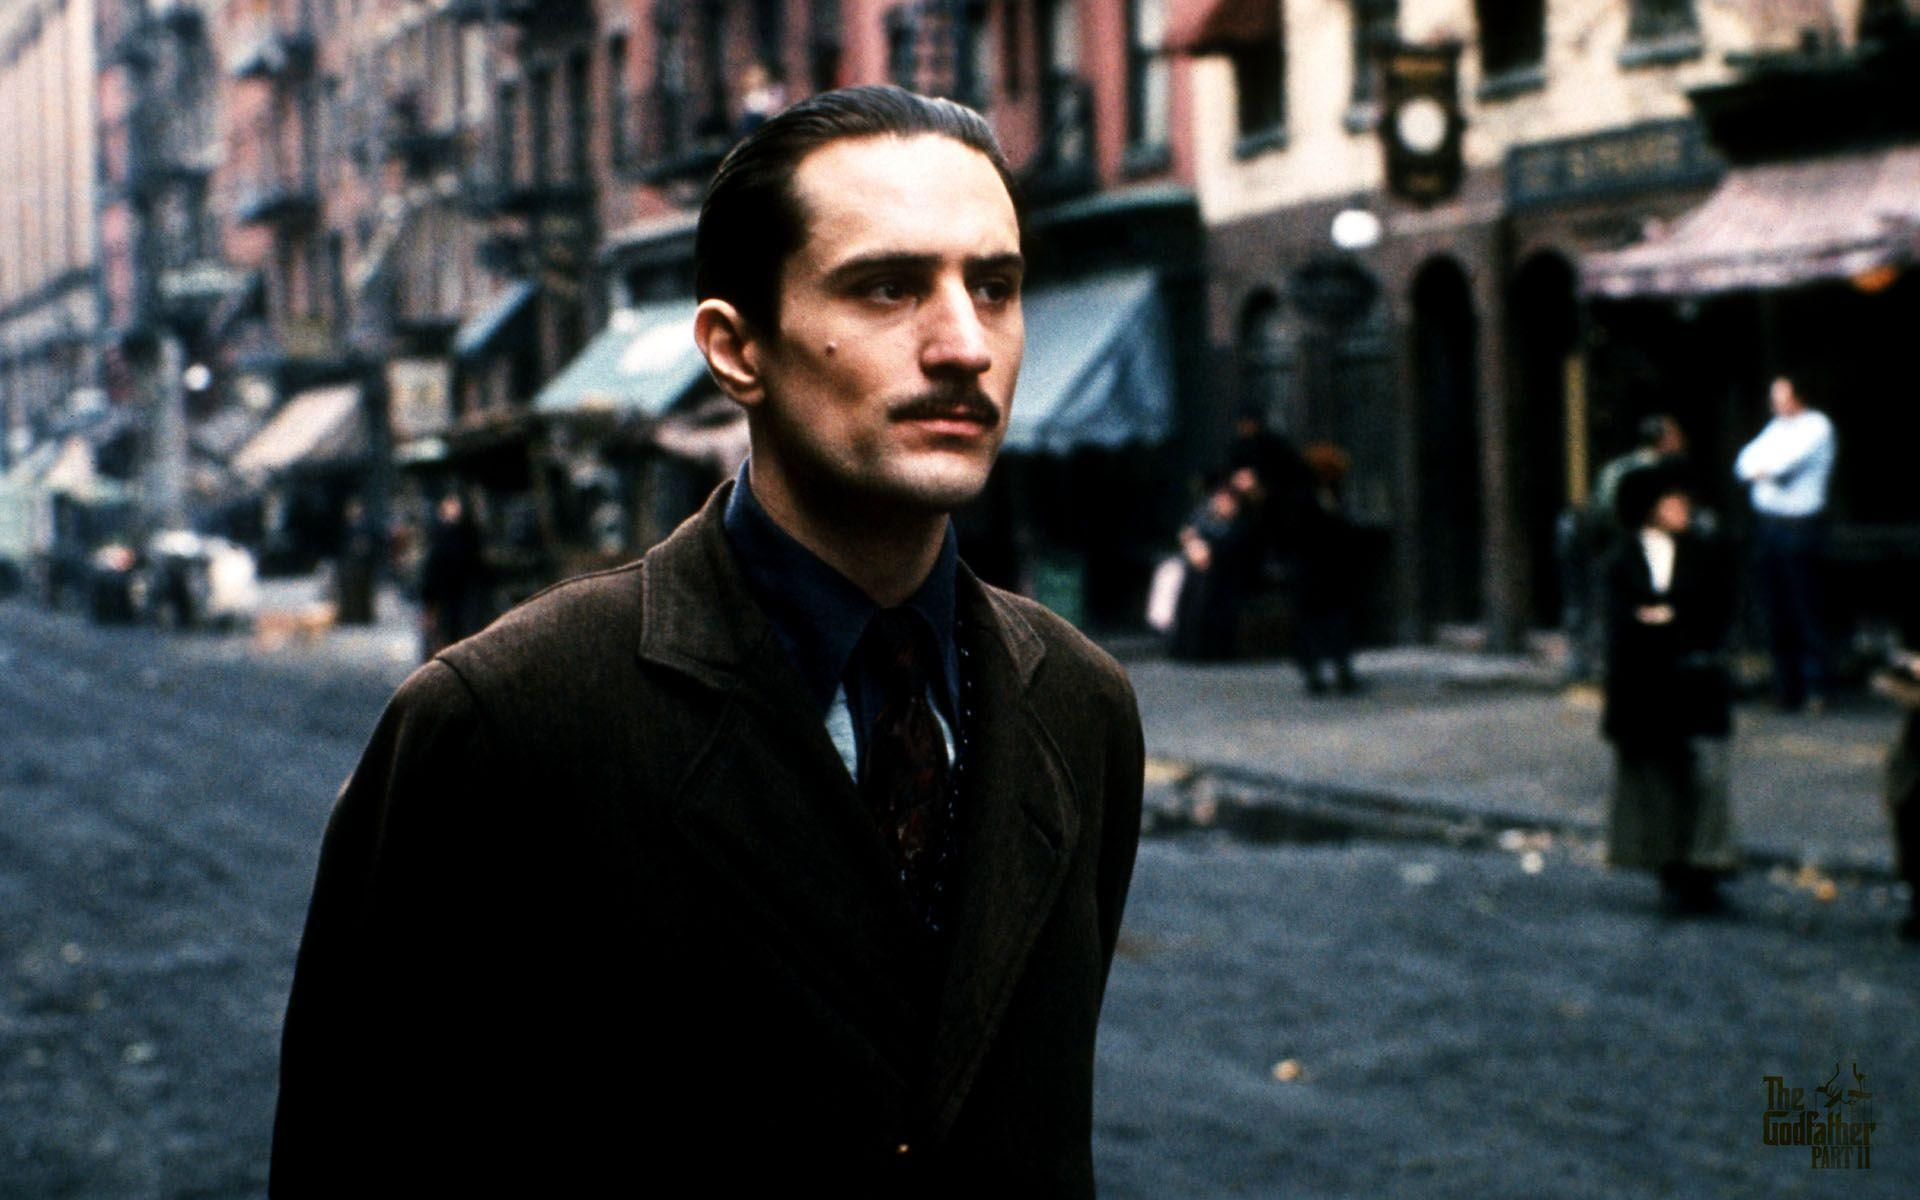 Wallpapers For > The Godfather 3 Wallpaper